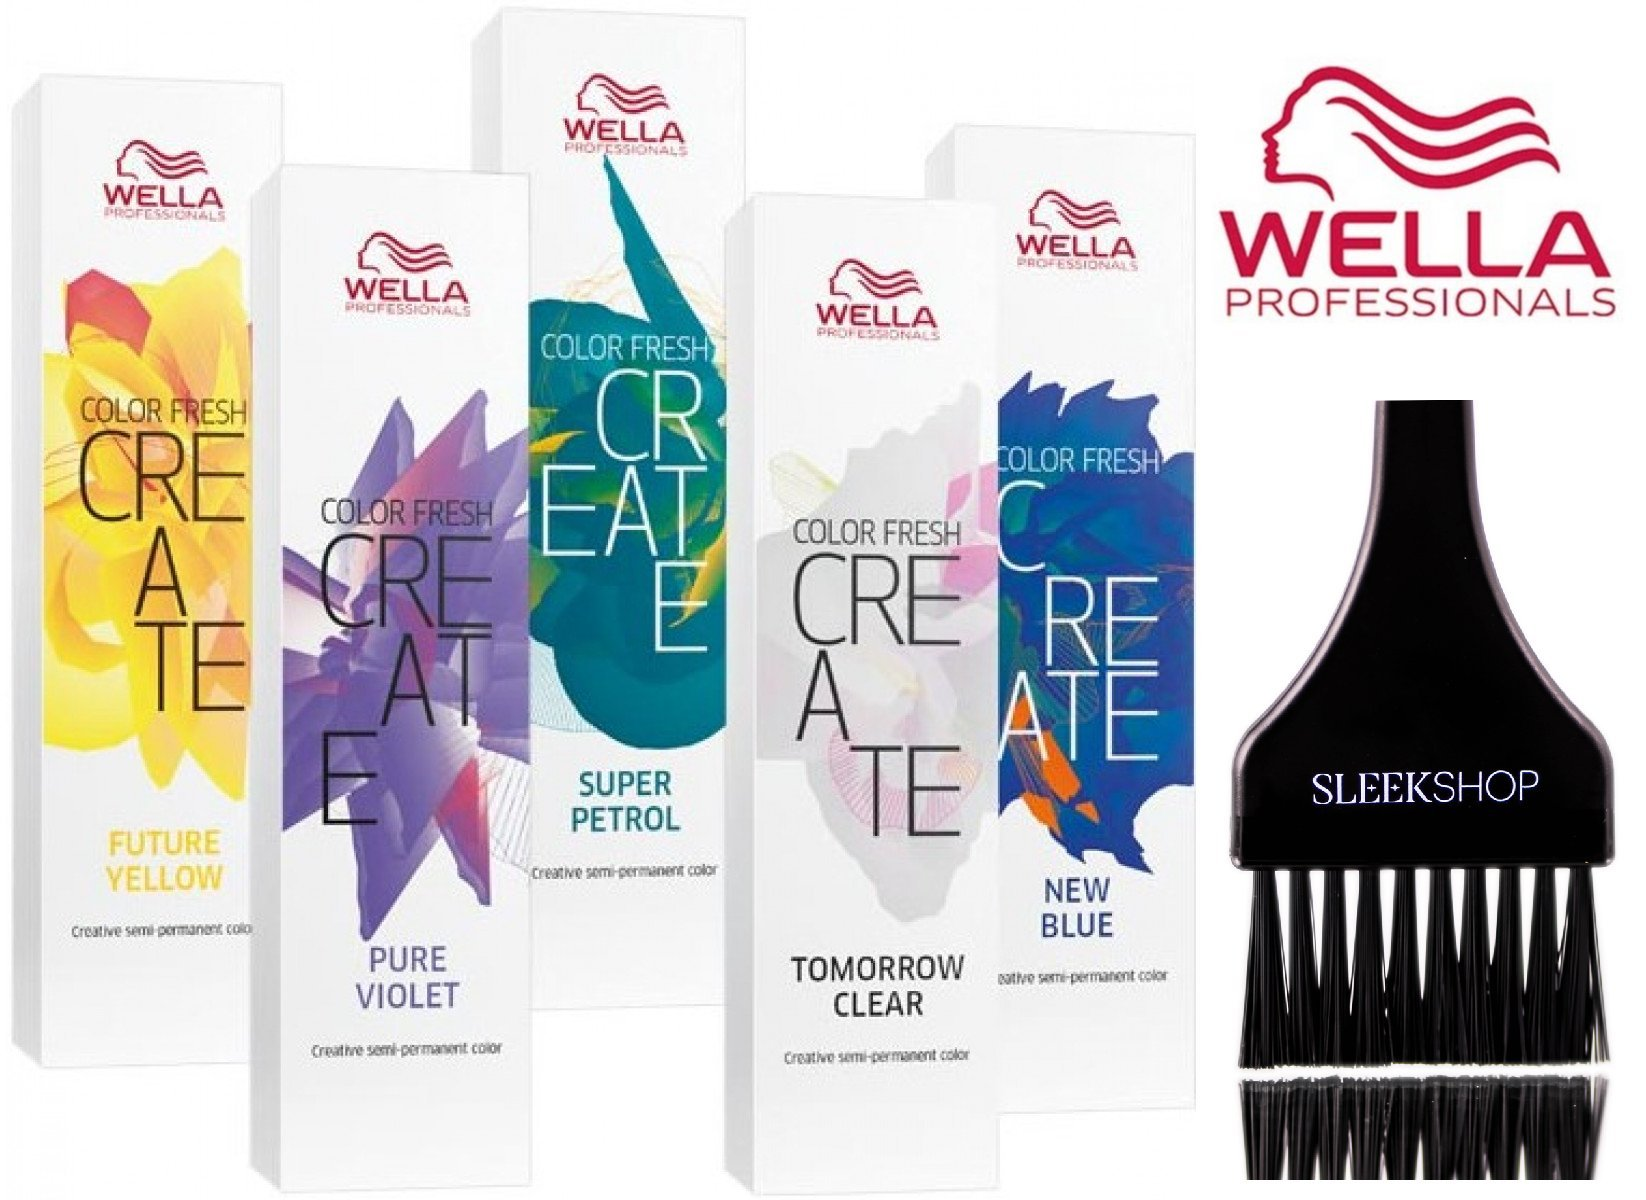 Wella COLOR FRESH CREATE Semi Permanent Shades Hair Color (with Sleek Tint Brush) (High Magenta) by Wella Professionals